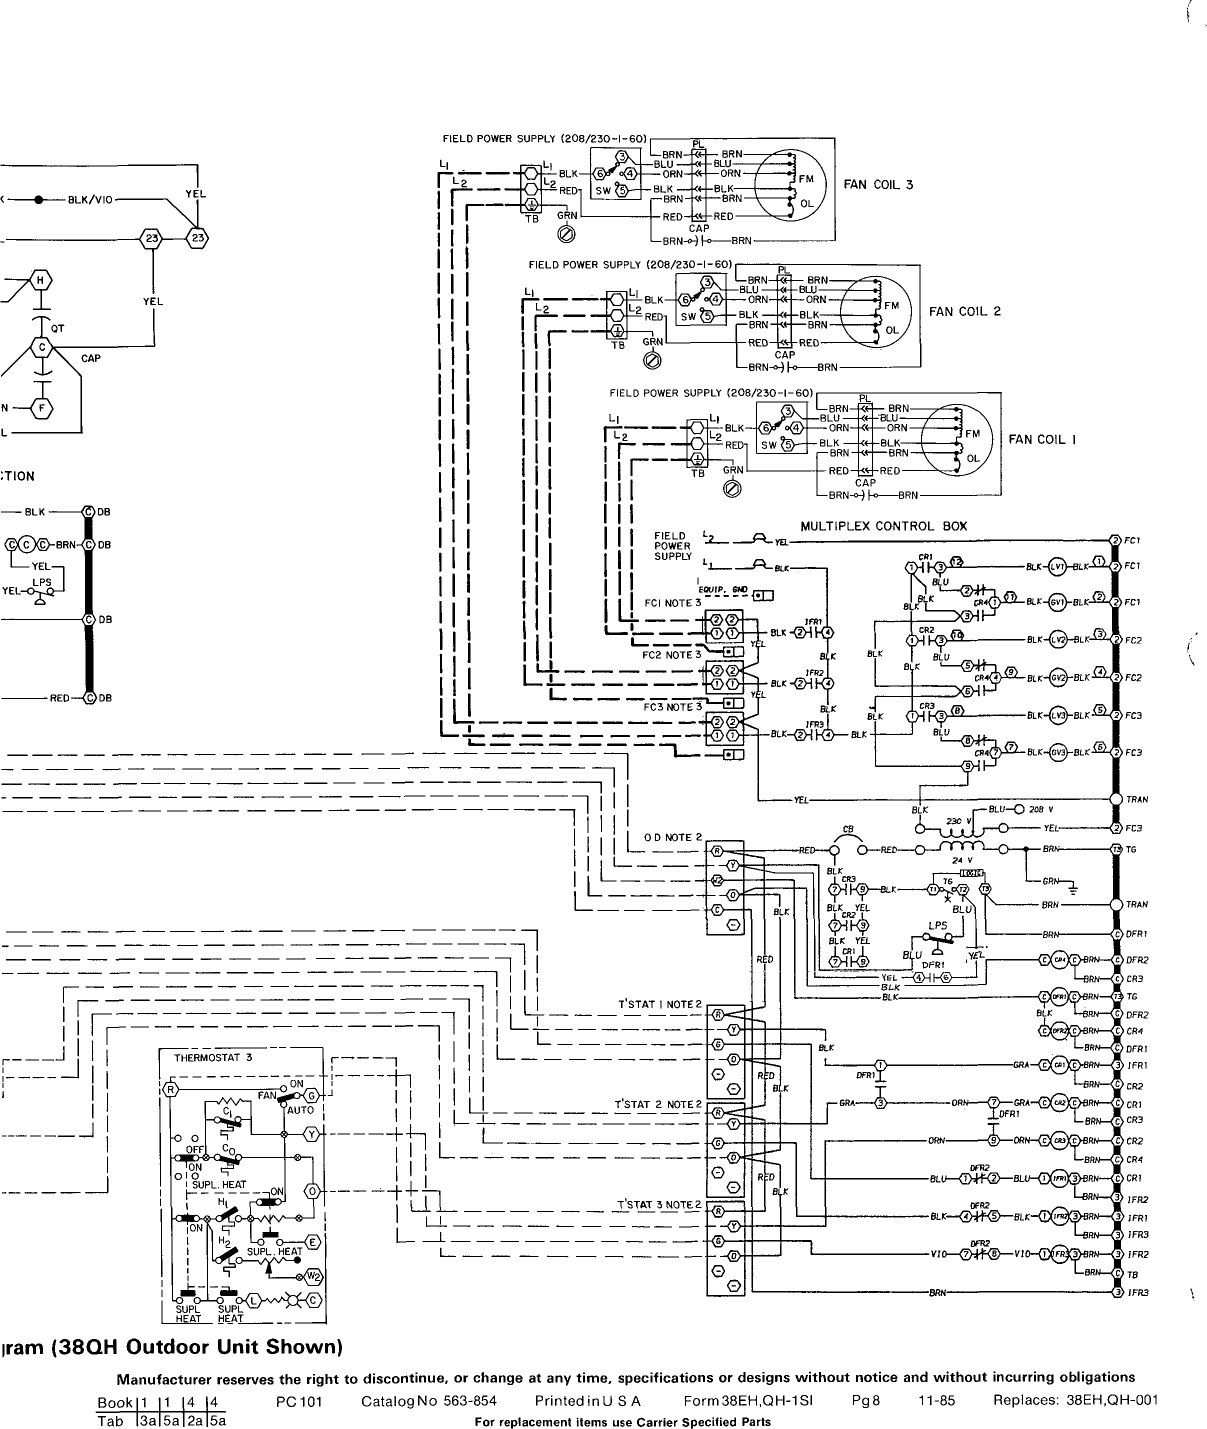 condensing unit schematic carrier air cooled condensing unit 38eh users manual  carrier air cooled condensing unit 38eh